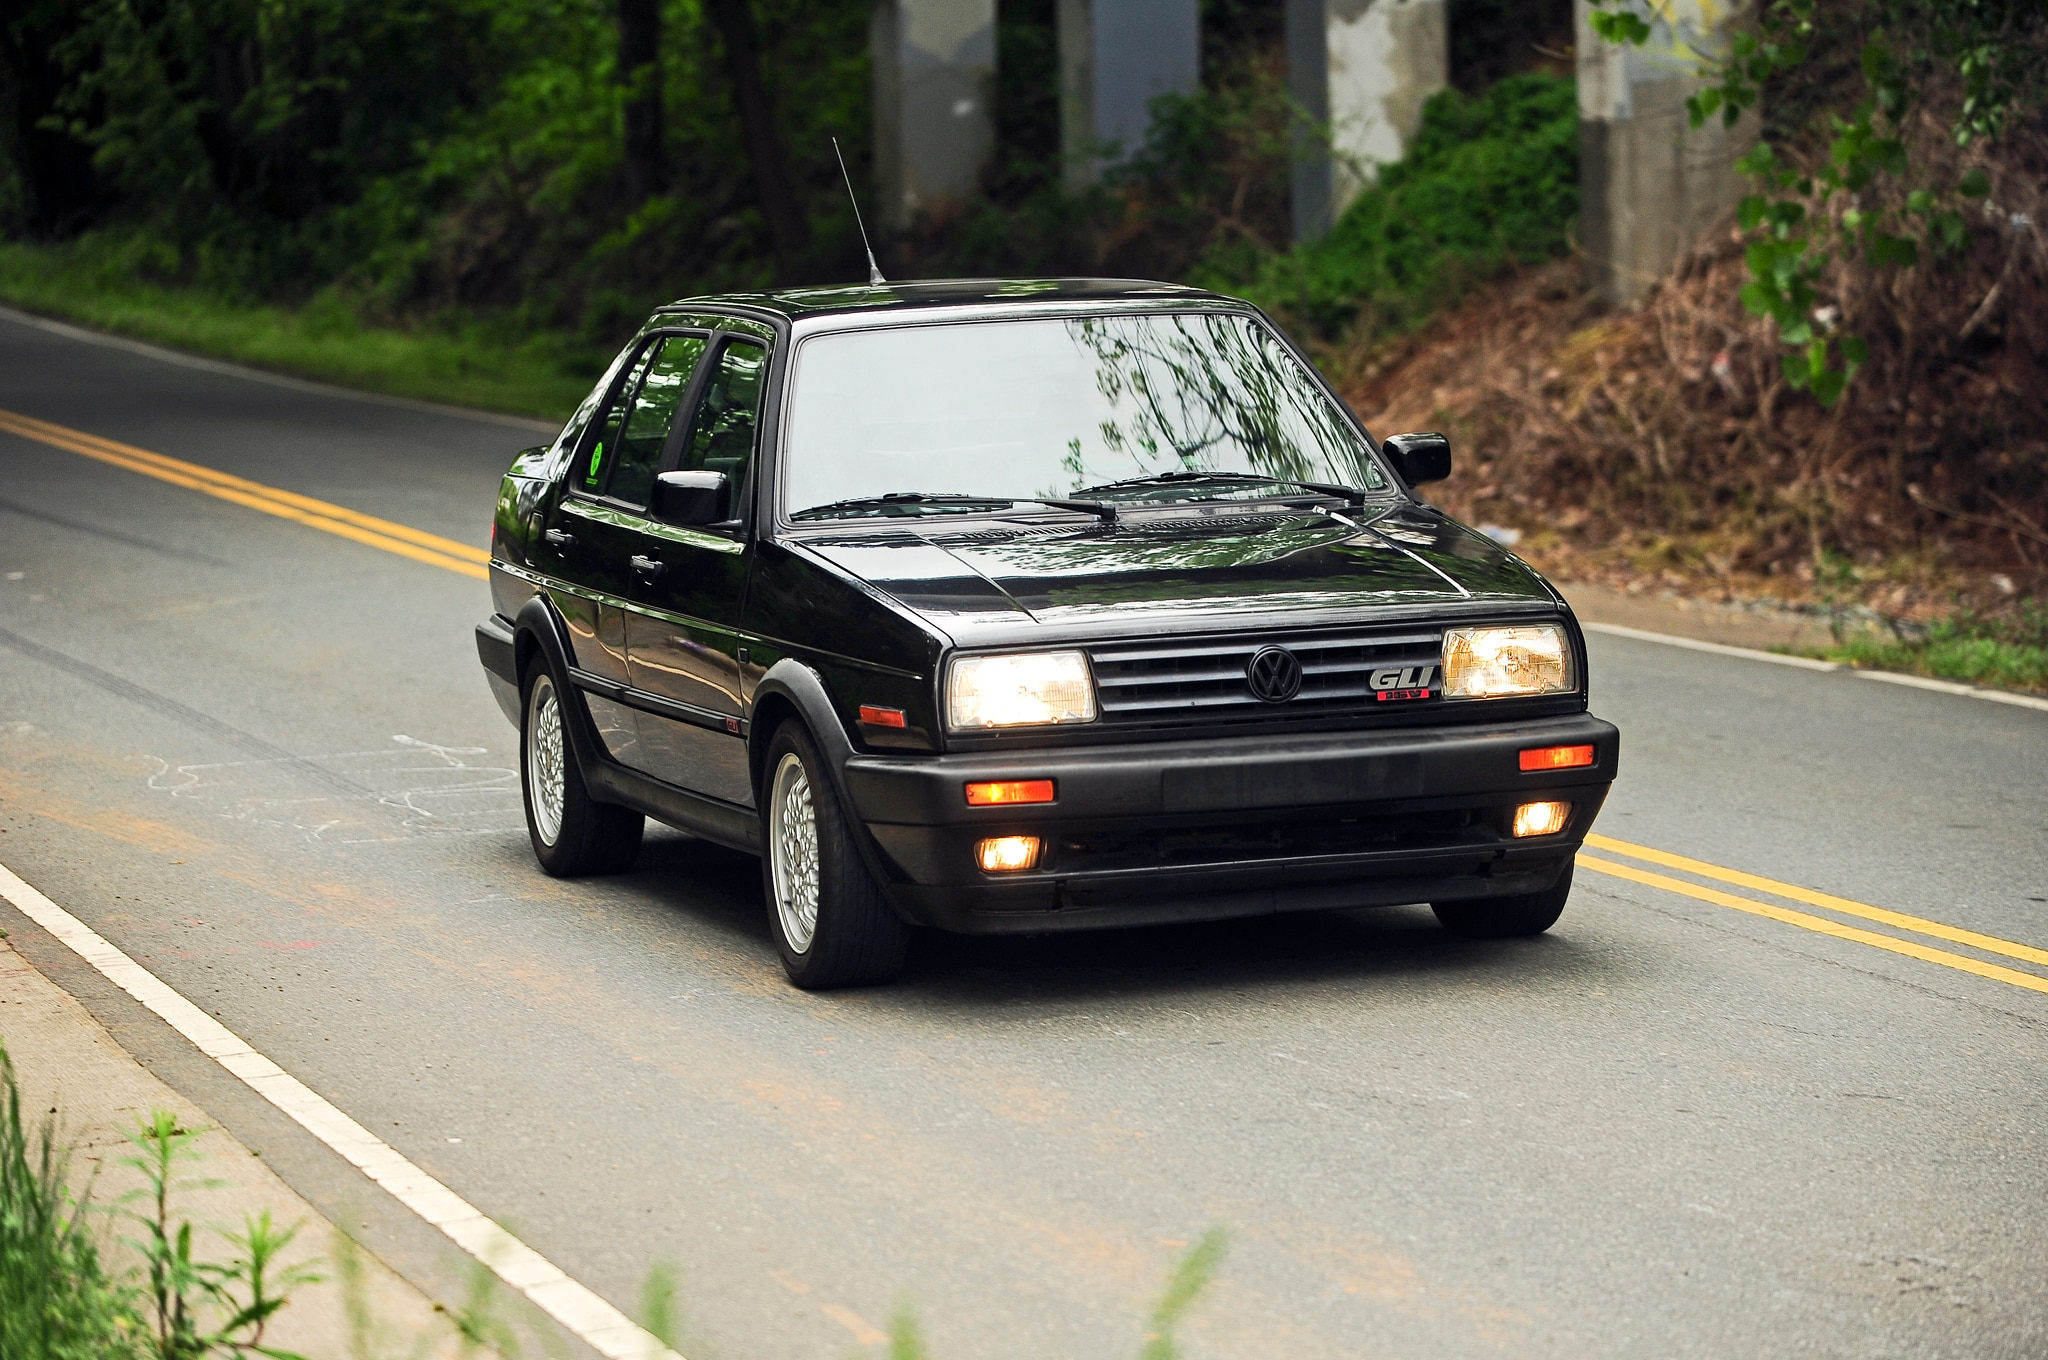 1990 1992 Volkswagen Jetta GLI Front Right View 2